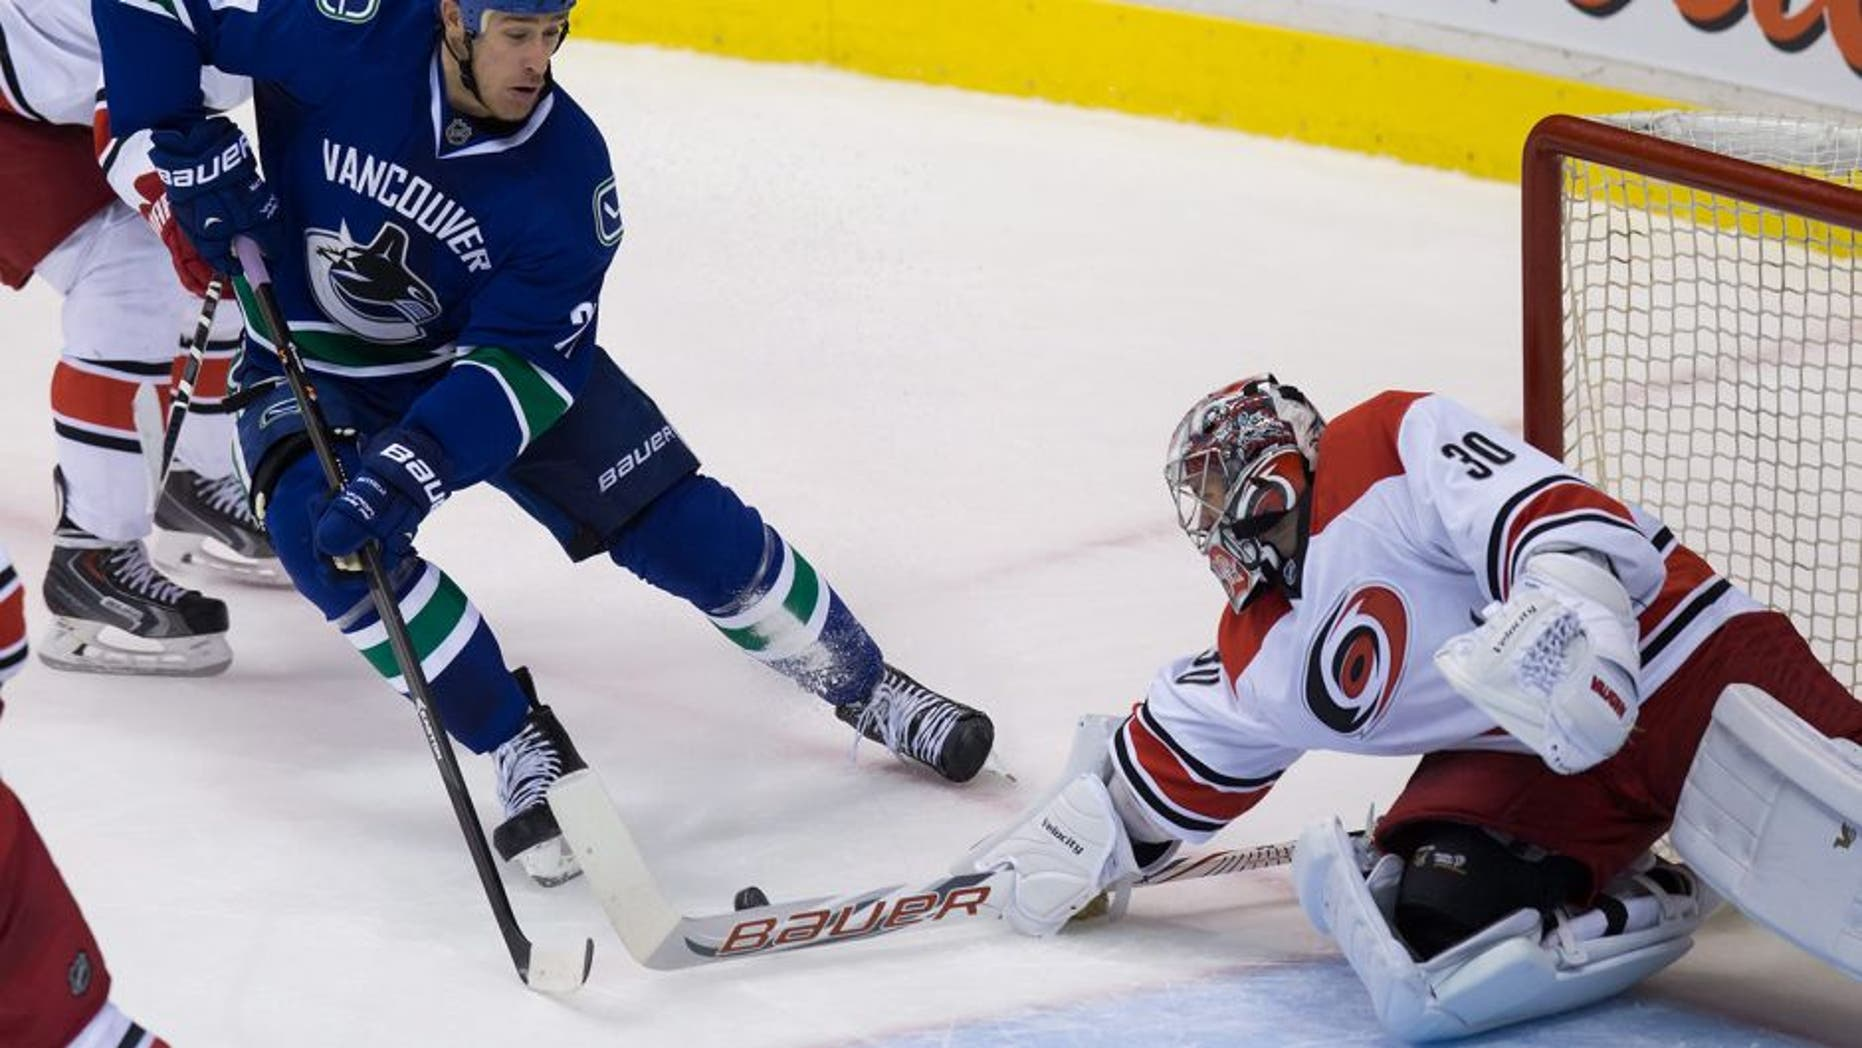 Vancouver Canucks' Shawn Matthias, left, is stopped by Carolina Hurricanes goalie Cam Ward during the second period of an NHL hockey game, Tuesday, Oct. 28, 2014 in Vancouver, British Columbia. (AP Photo/The Canadian Press, Darryl Dyck)